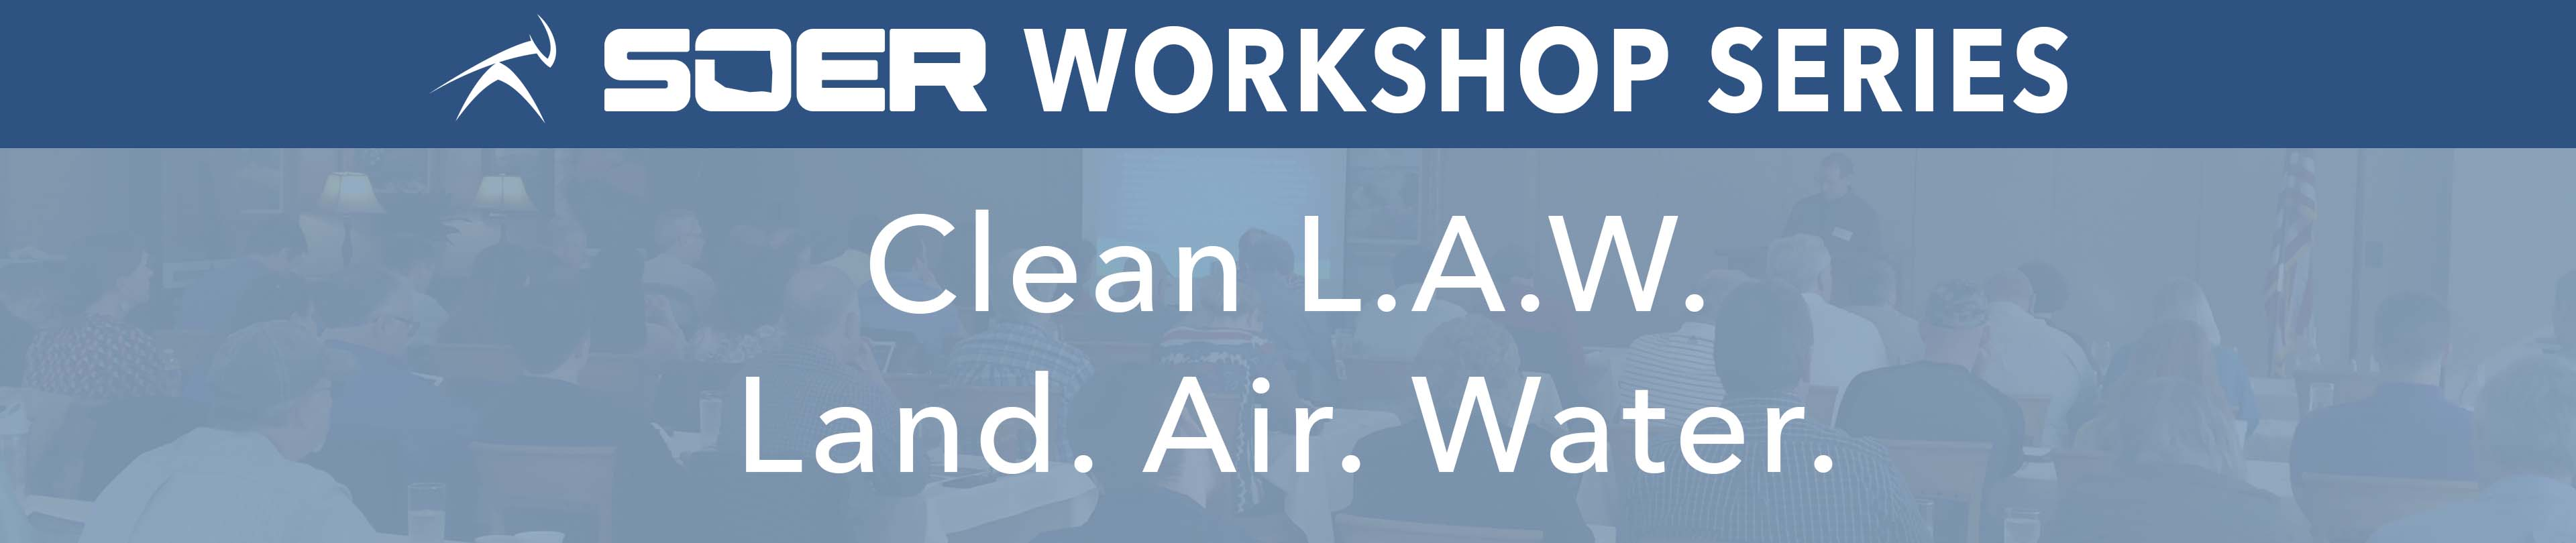 SOER- Clean L.A.W. - Land. Air. Water (Ardmore)